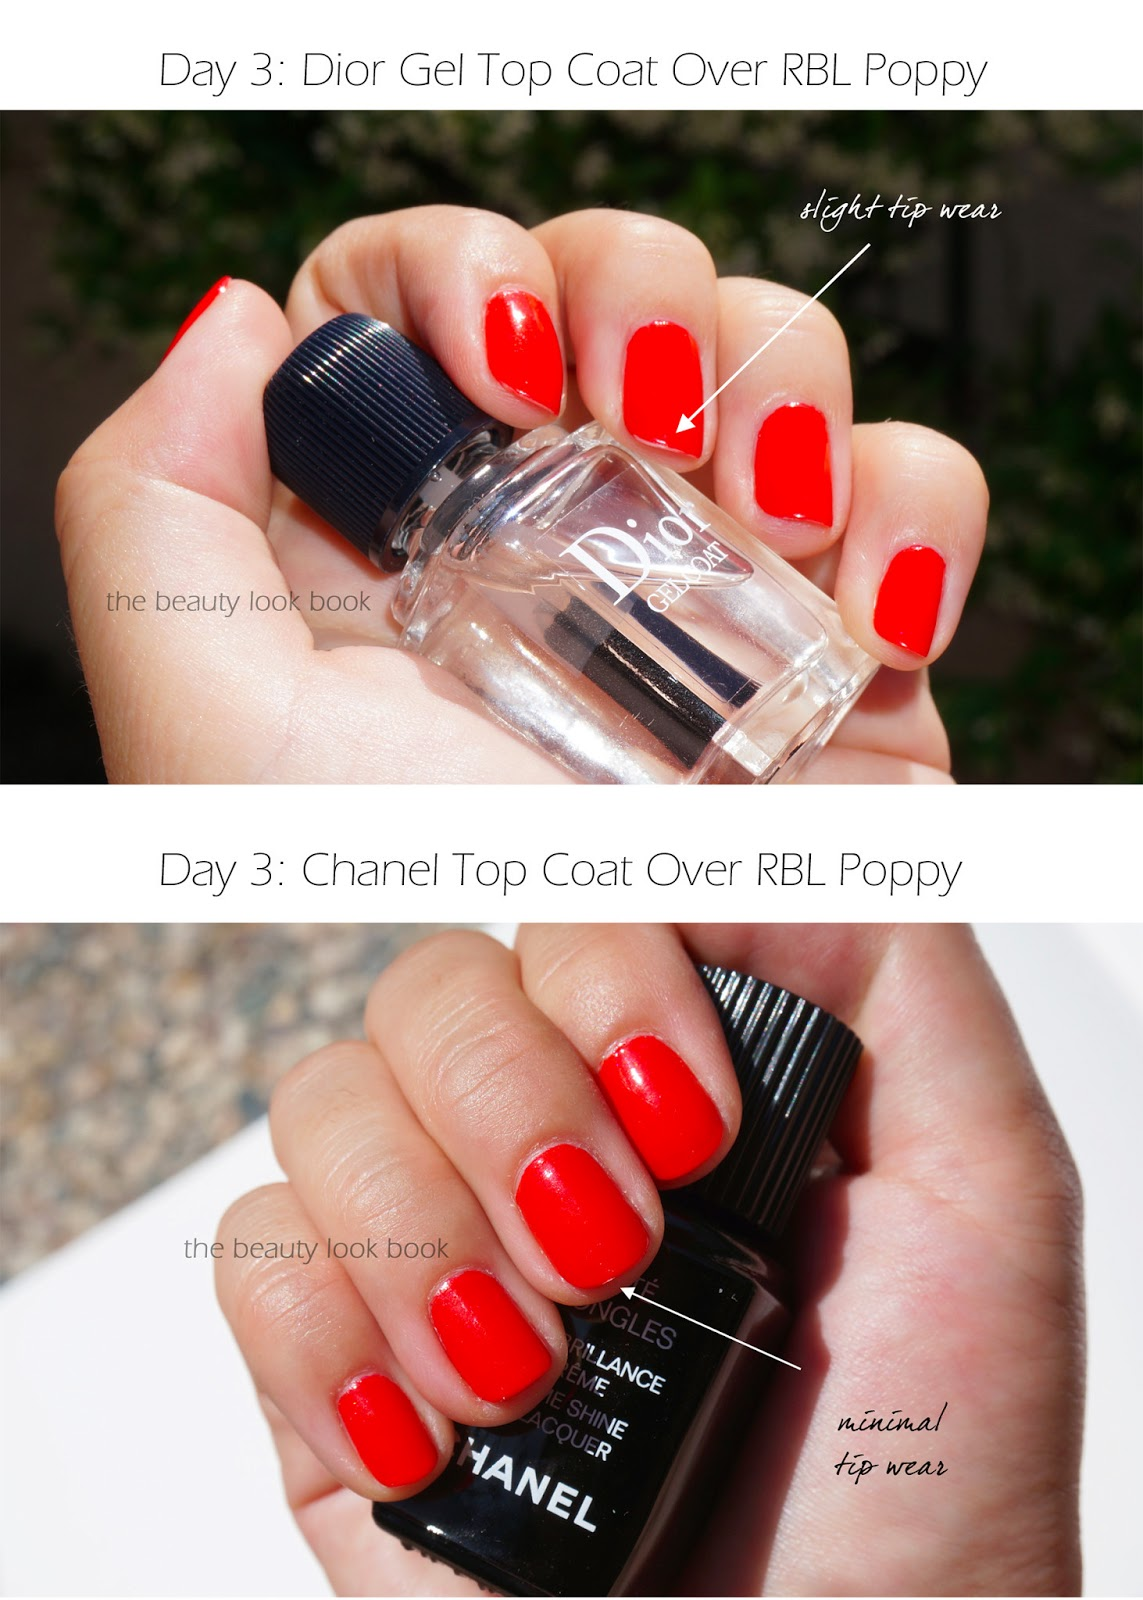 Fancy Nail Polish Vs Nail Lacquer Photos - Nail Art Ideas - morihati.com